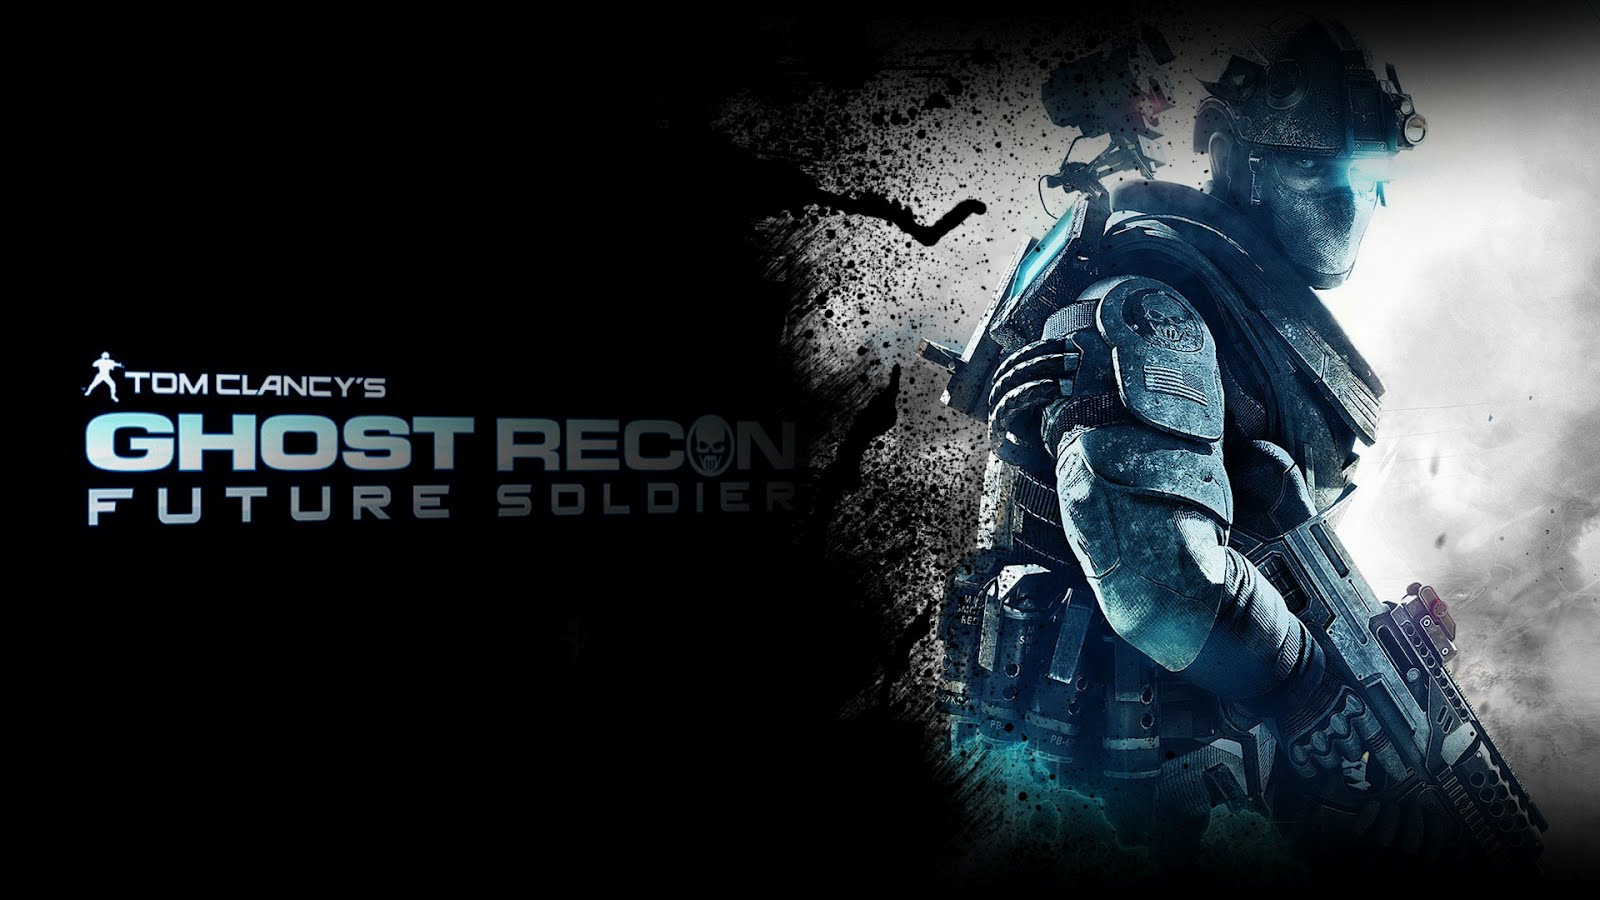 Ghost Recon Future Soldier Hd Wallpapers   GamesCay 1600x900